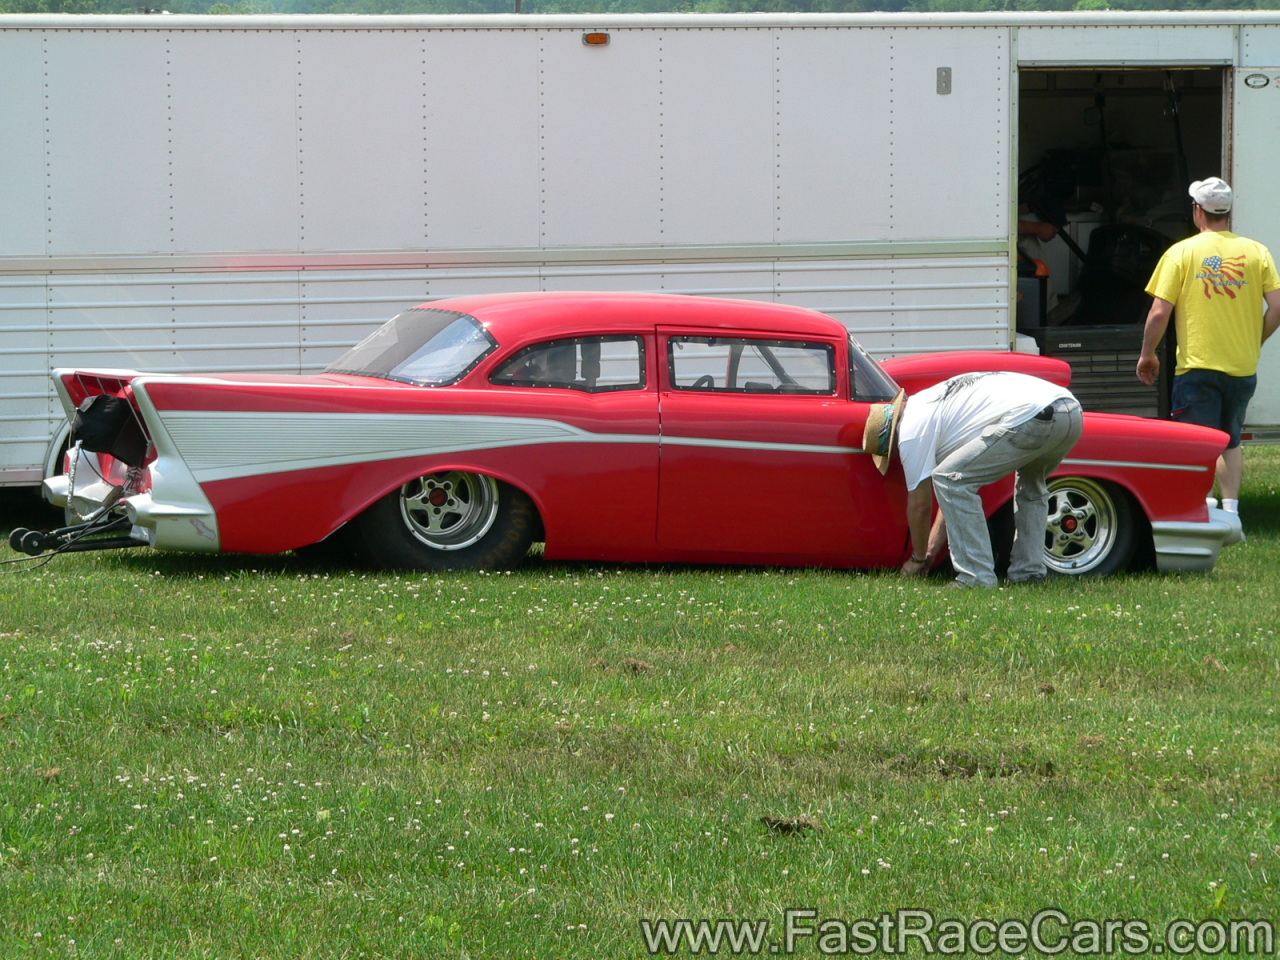 55 Chevy Drag Race Car http://www.fastracecars.com/categories/Drag%20Race%20Cars/55%20-%2057%20Chevrolets/large/shoebox-6.html